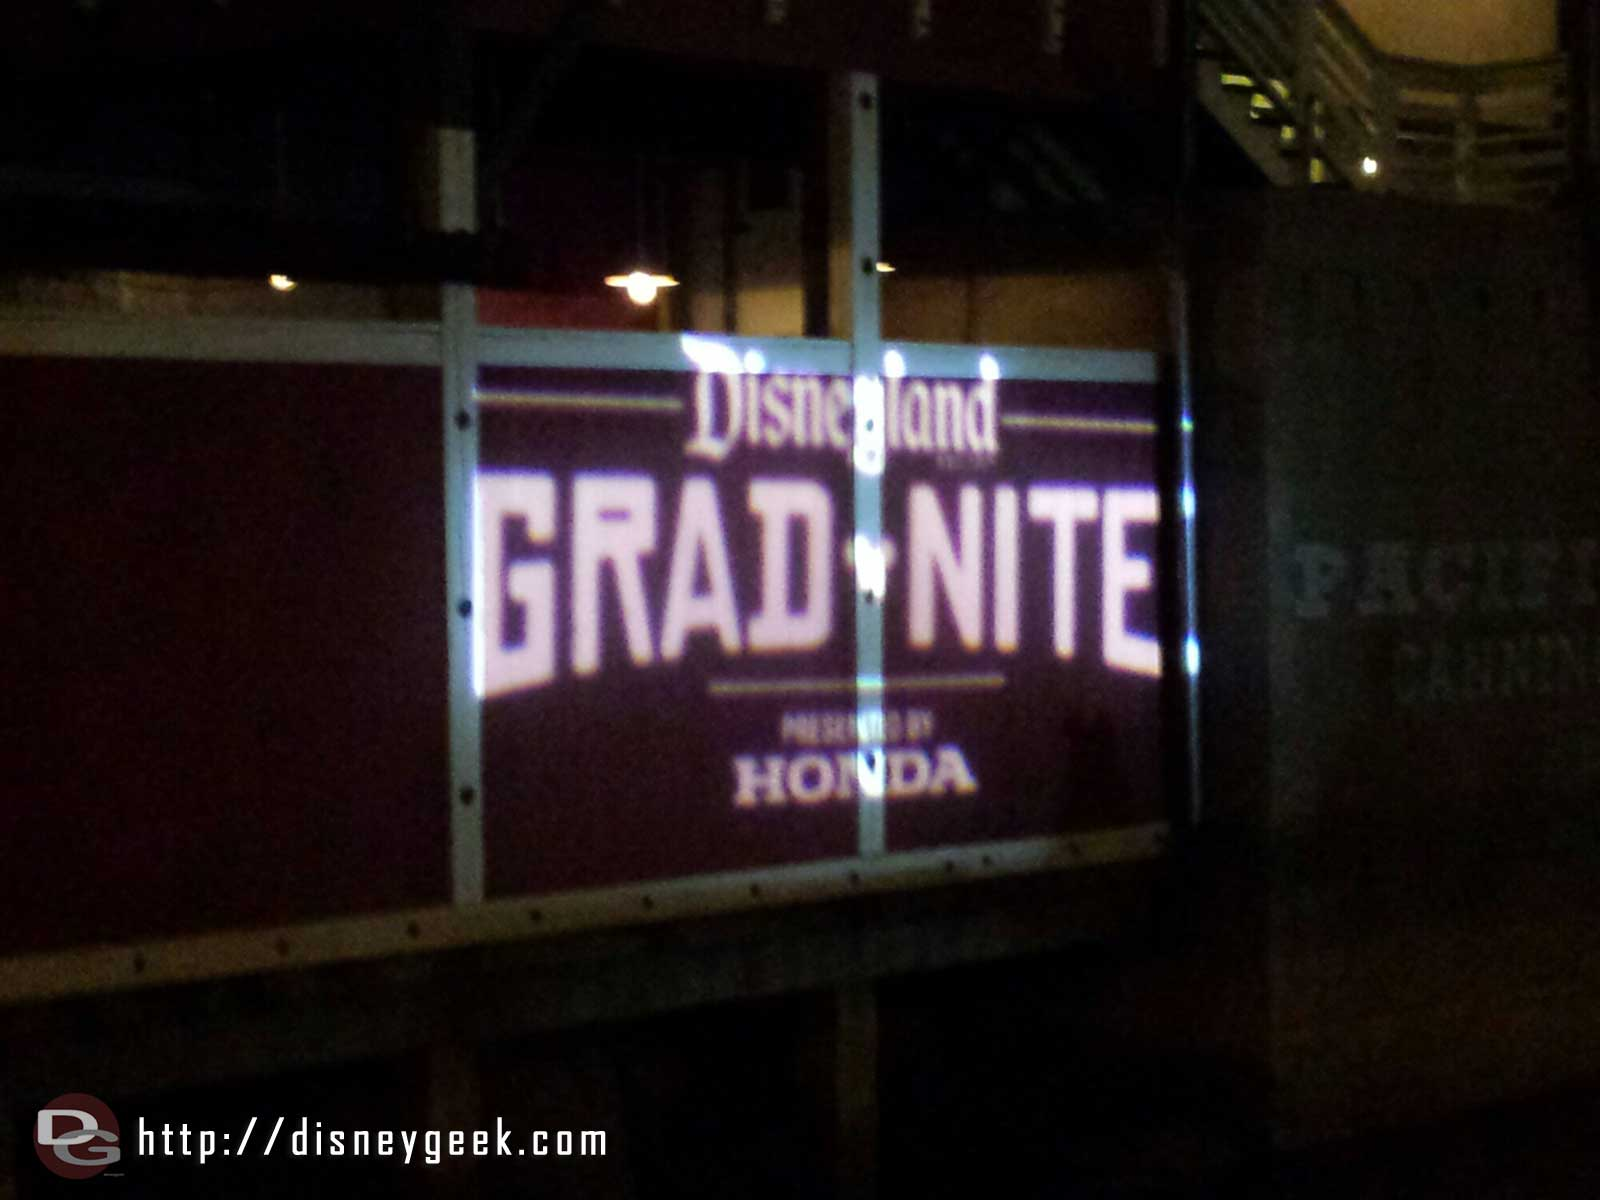 #Gradnite was taking over Disney California Adventure as I left.